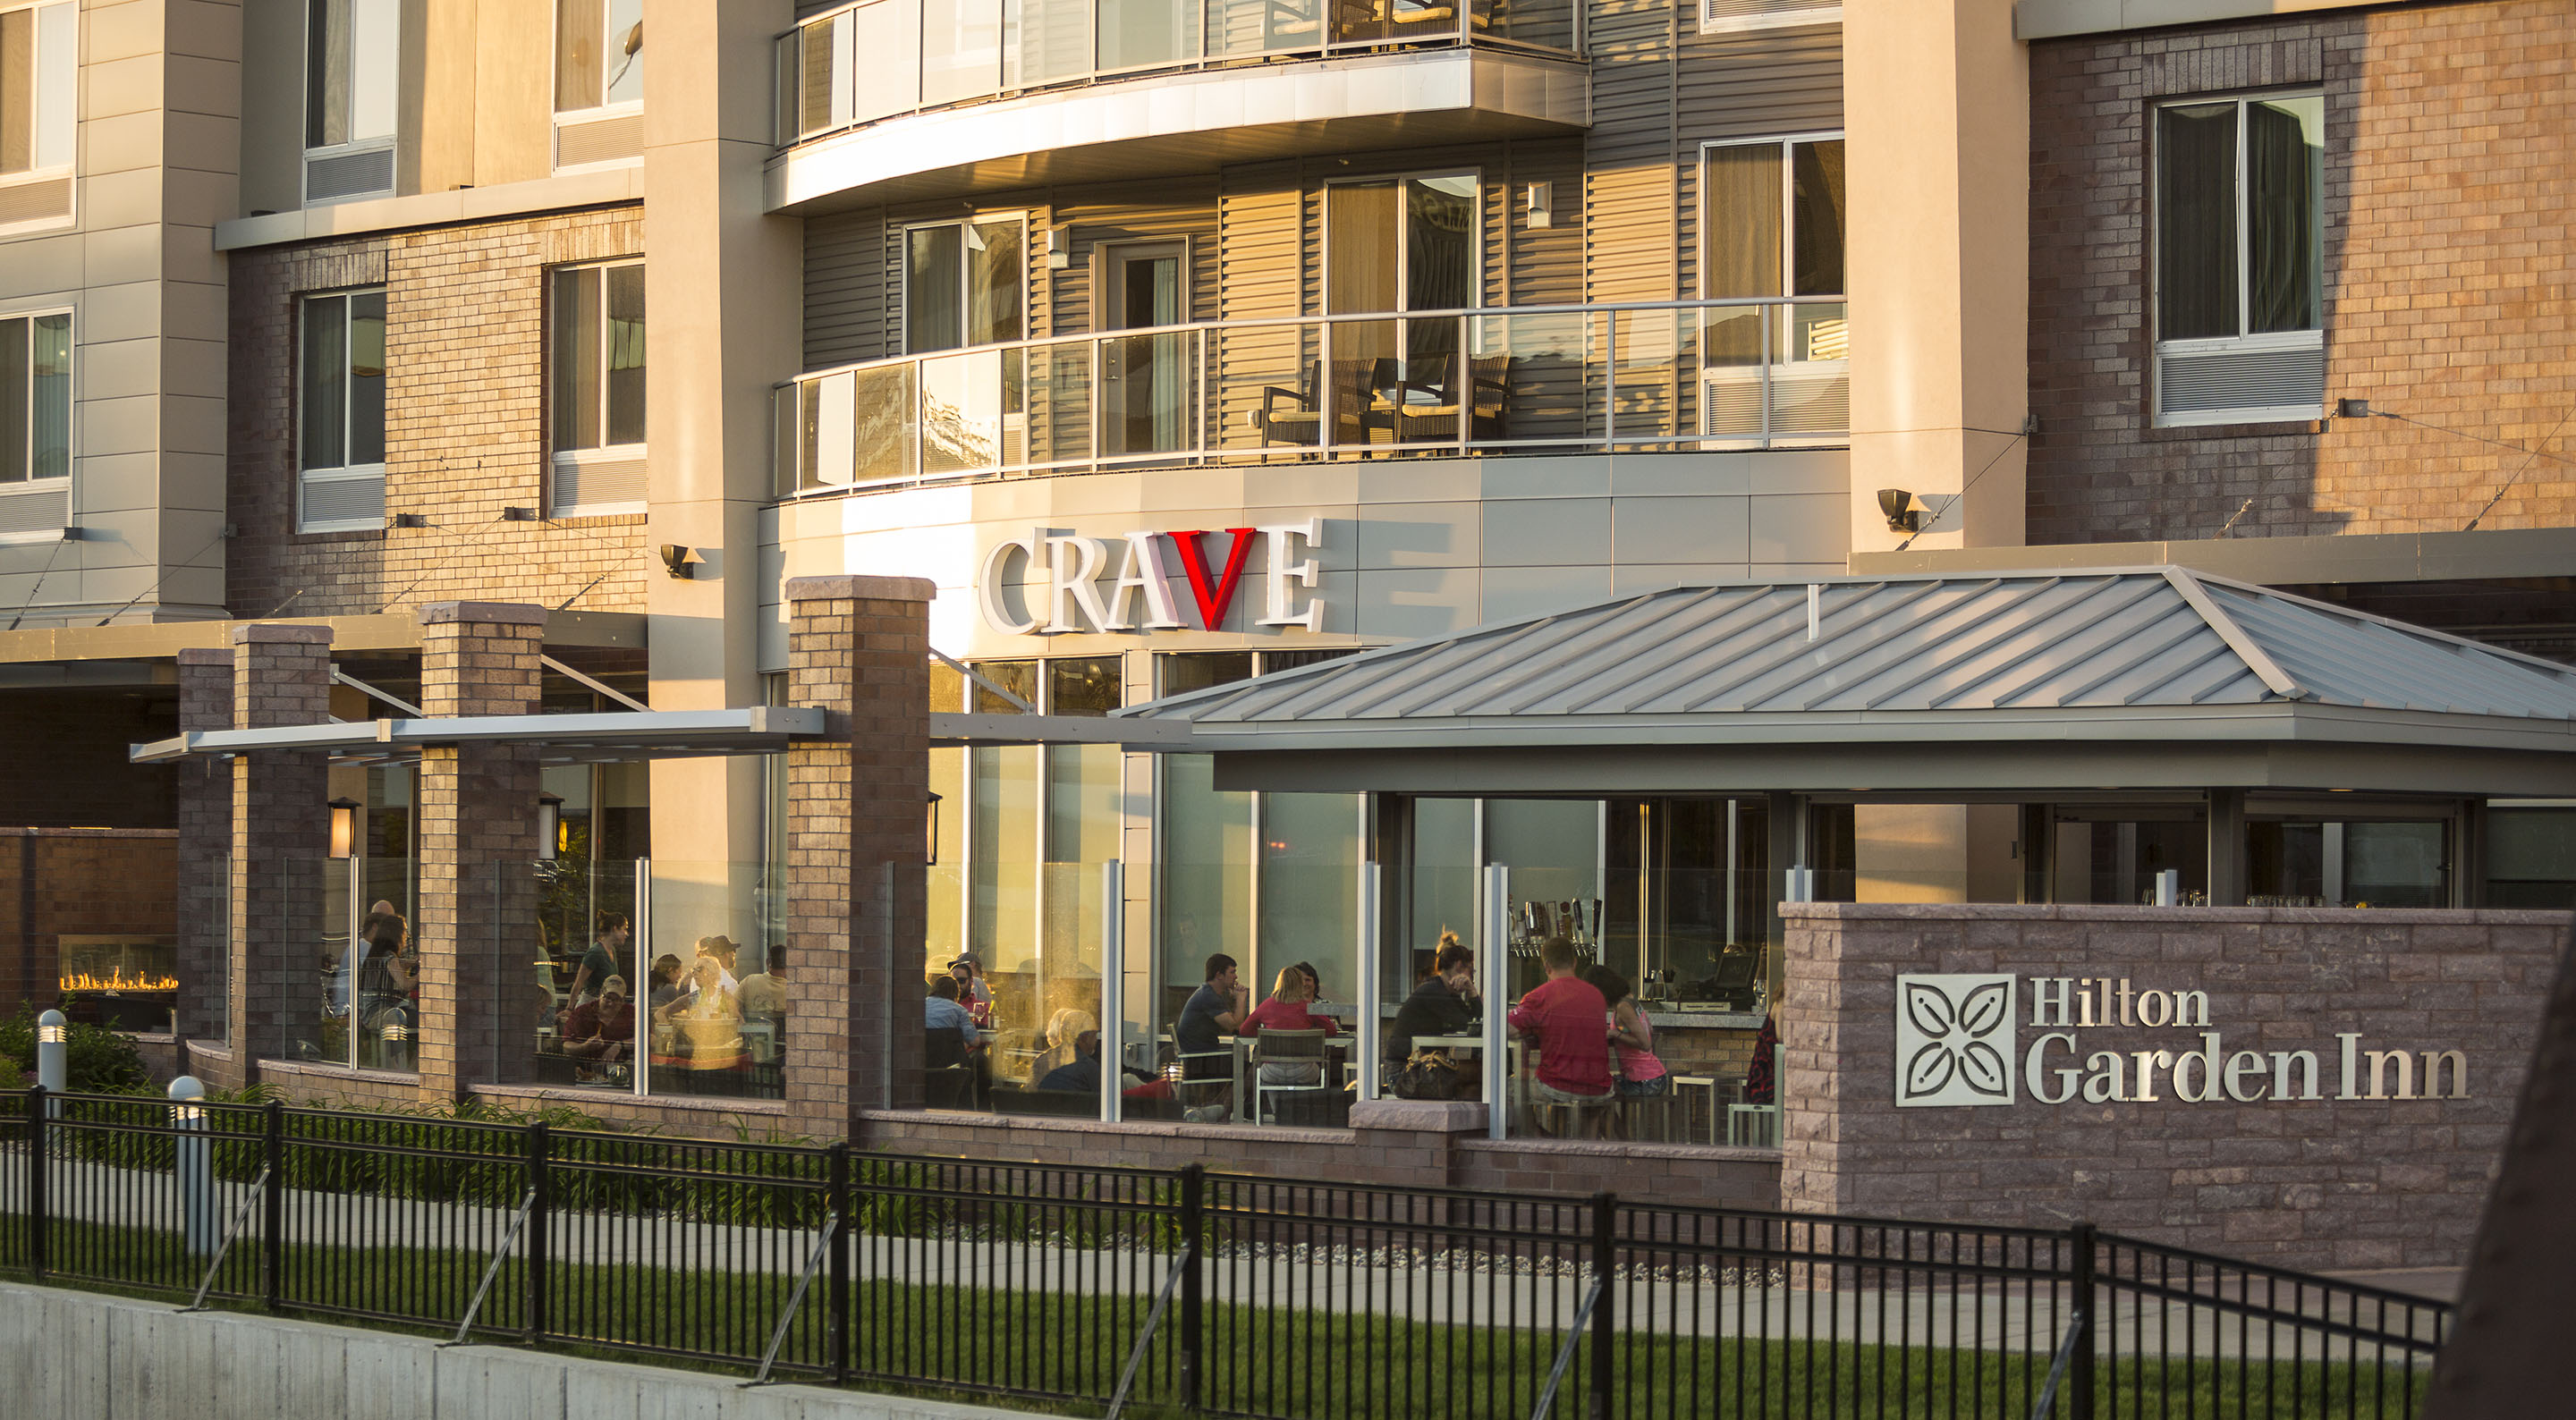 CRAVE Sioux Falls patio